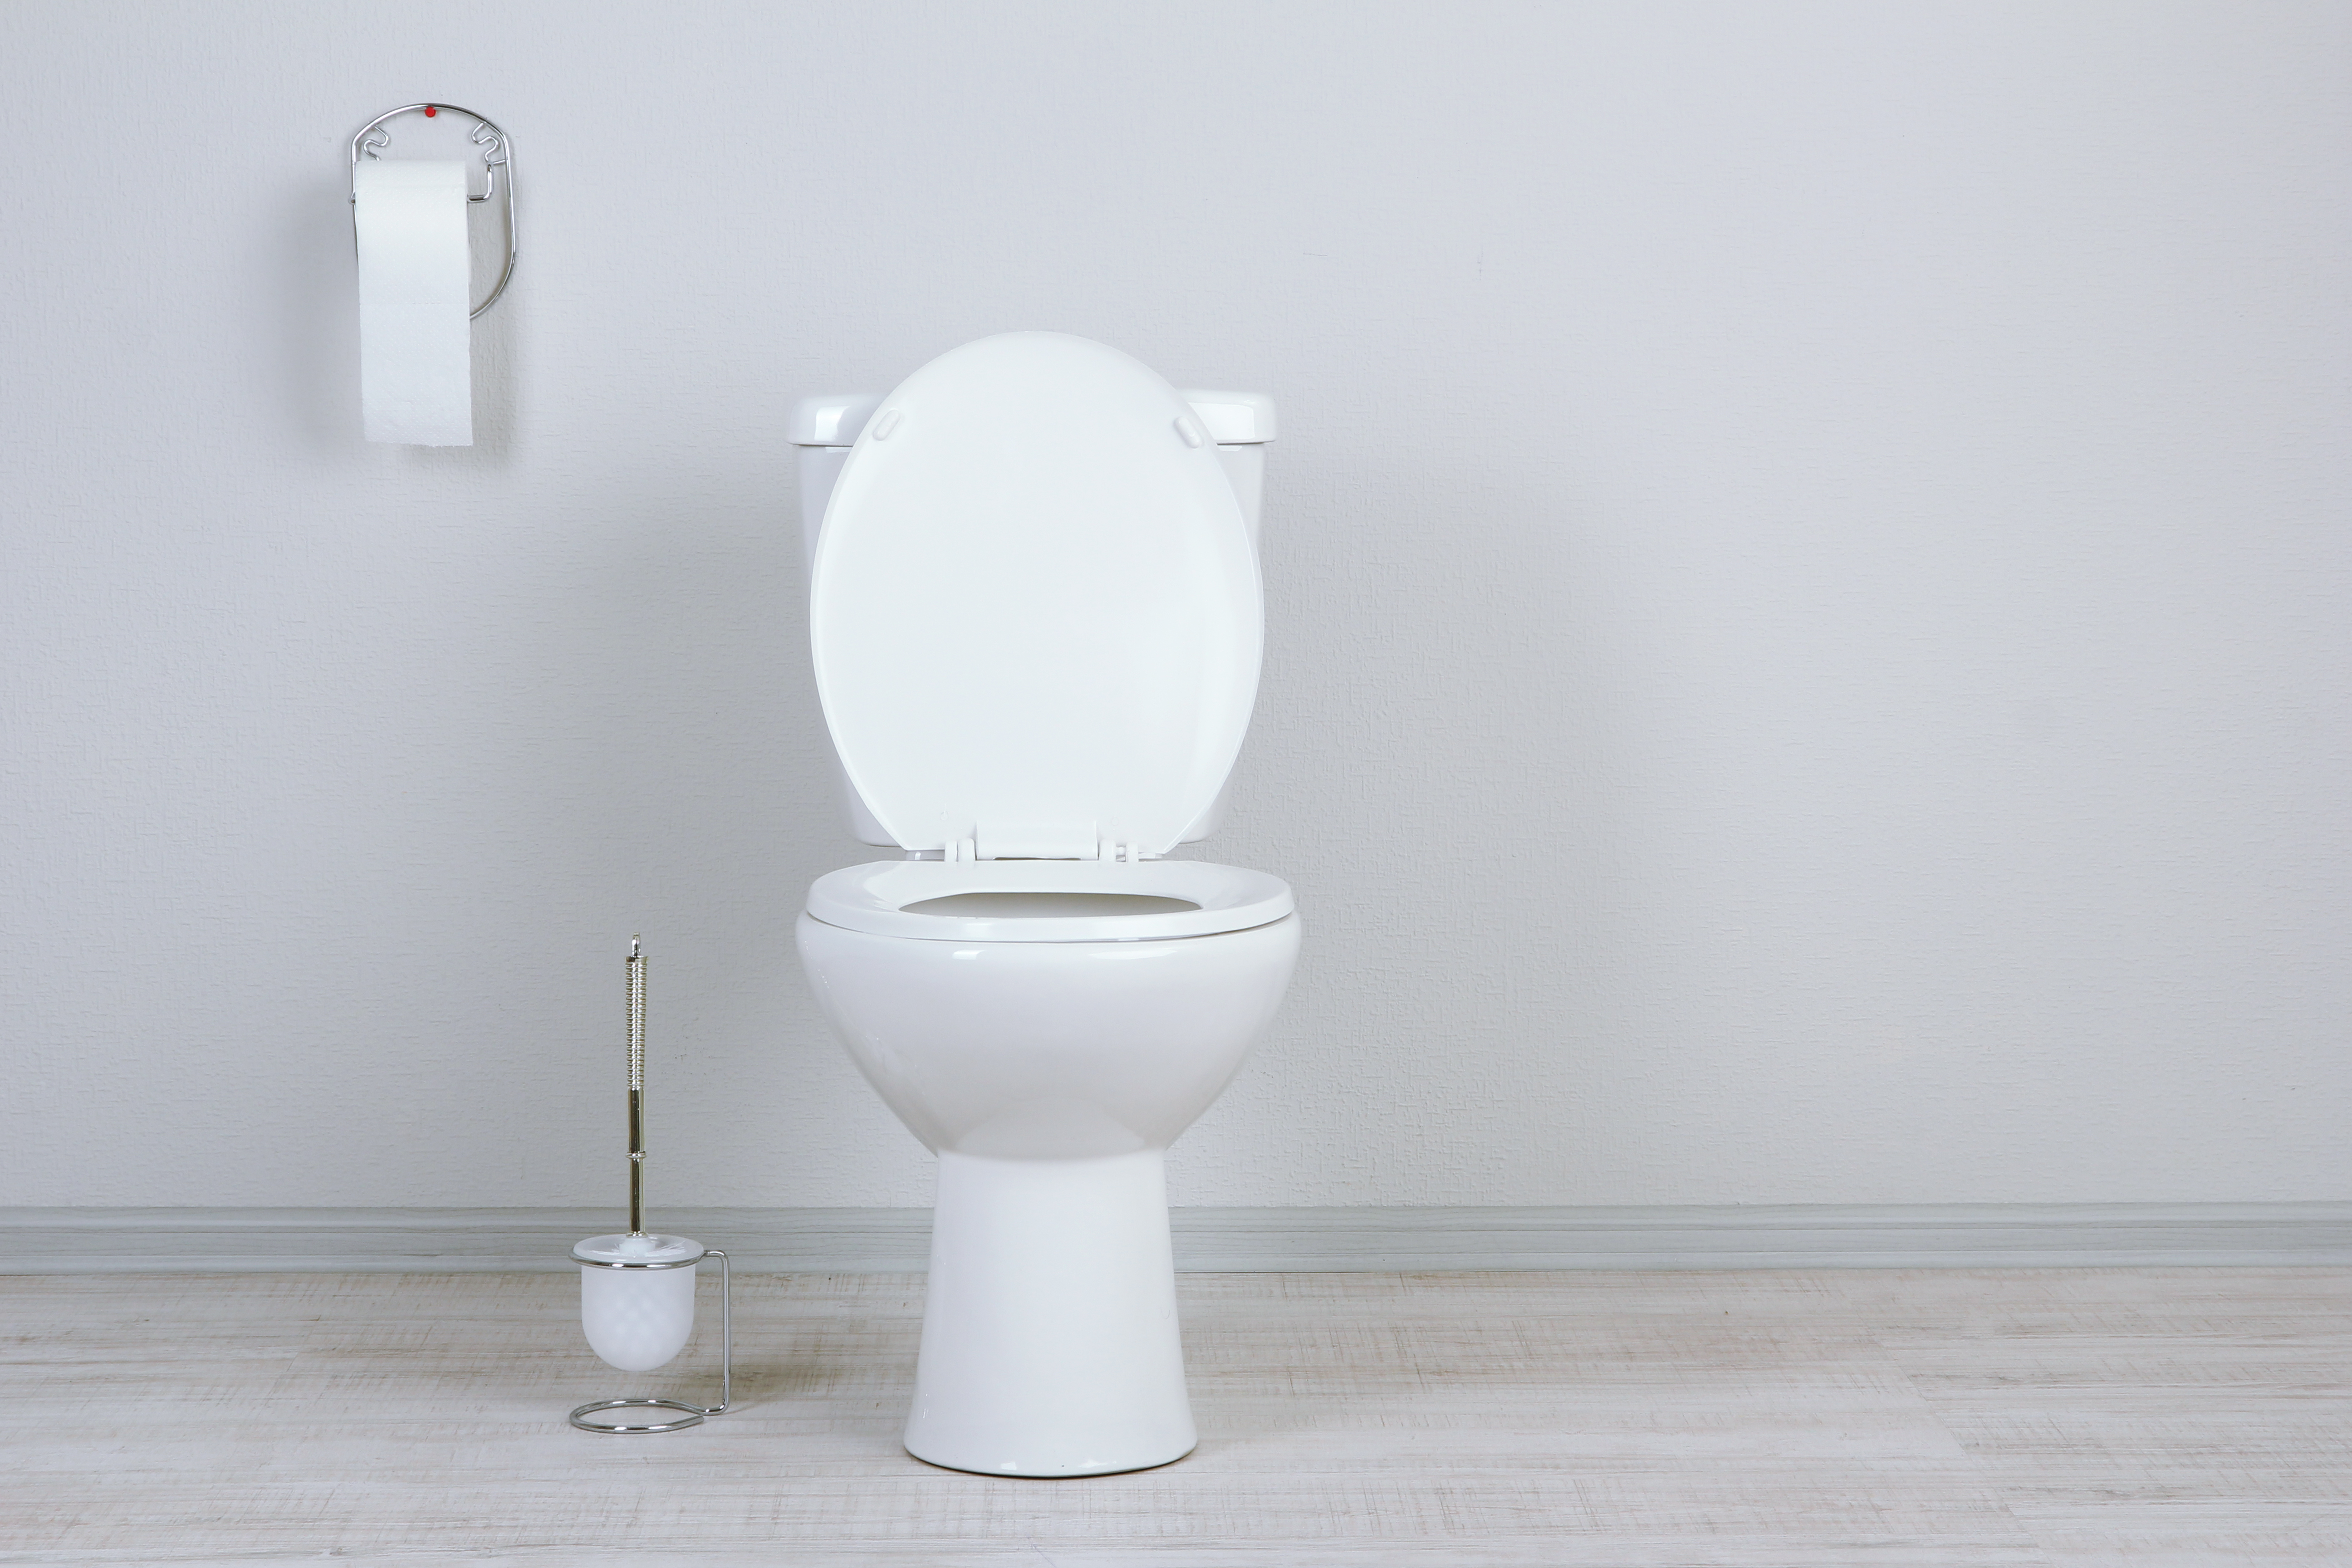 How To Vent A Bathroom Toilet